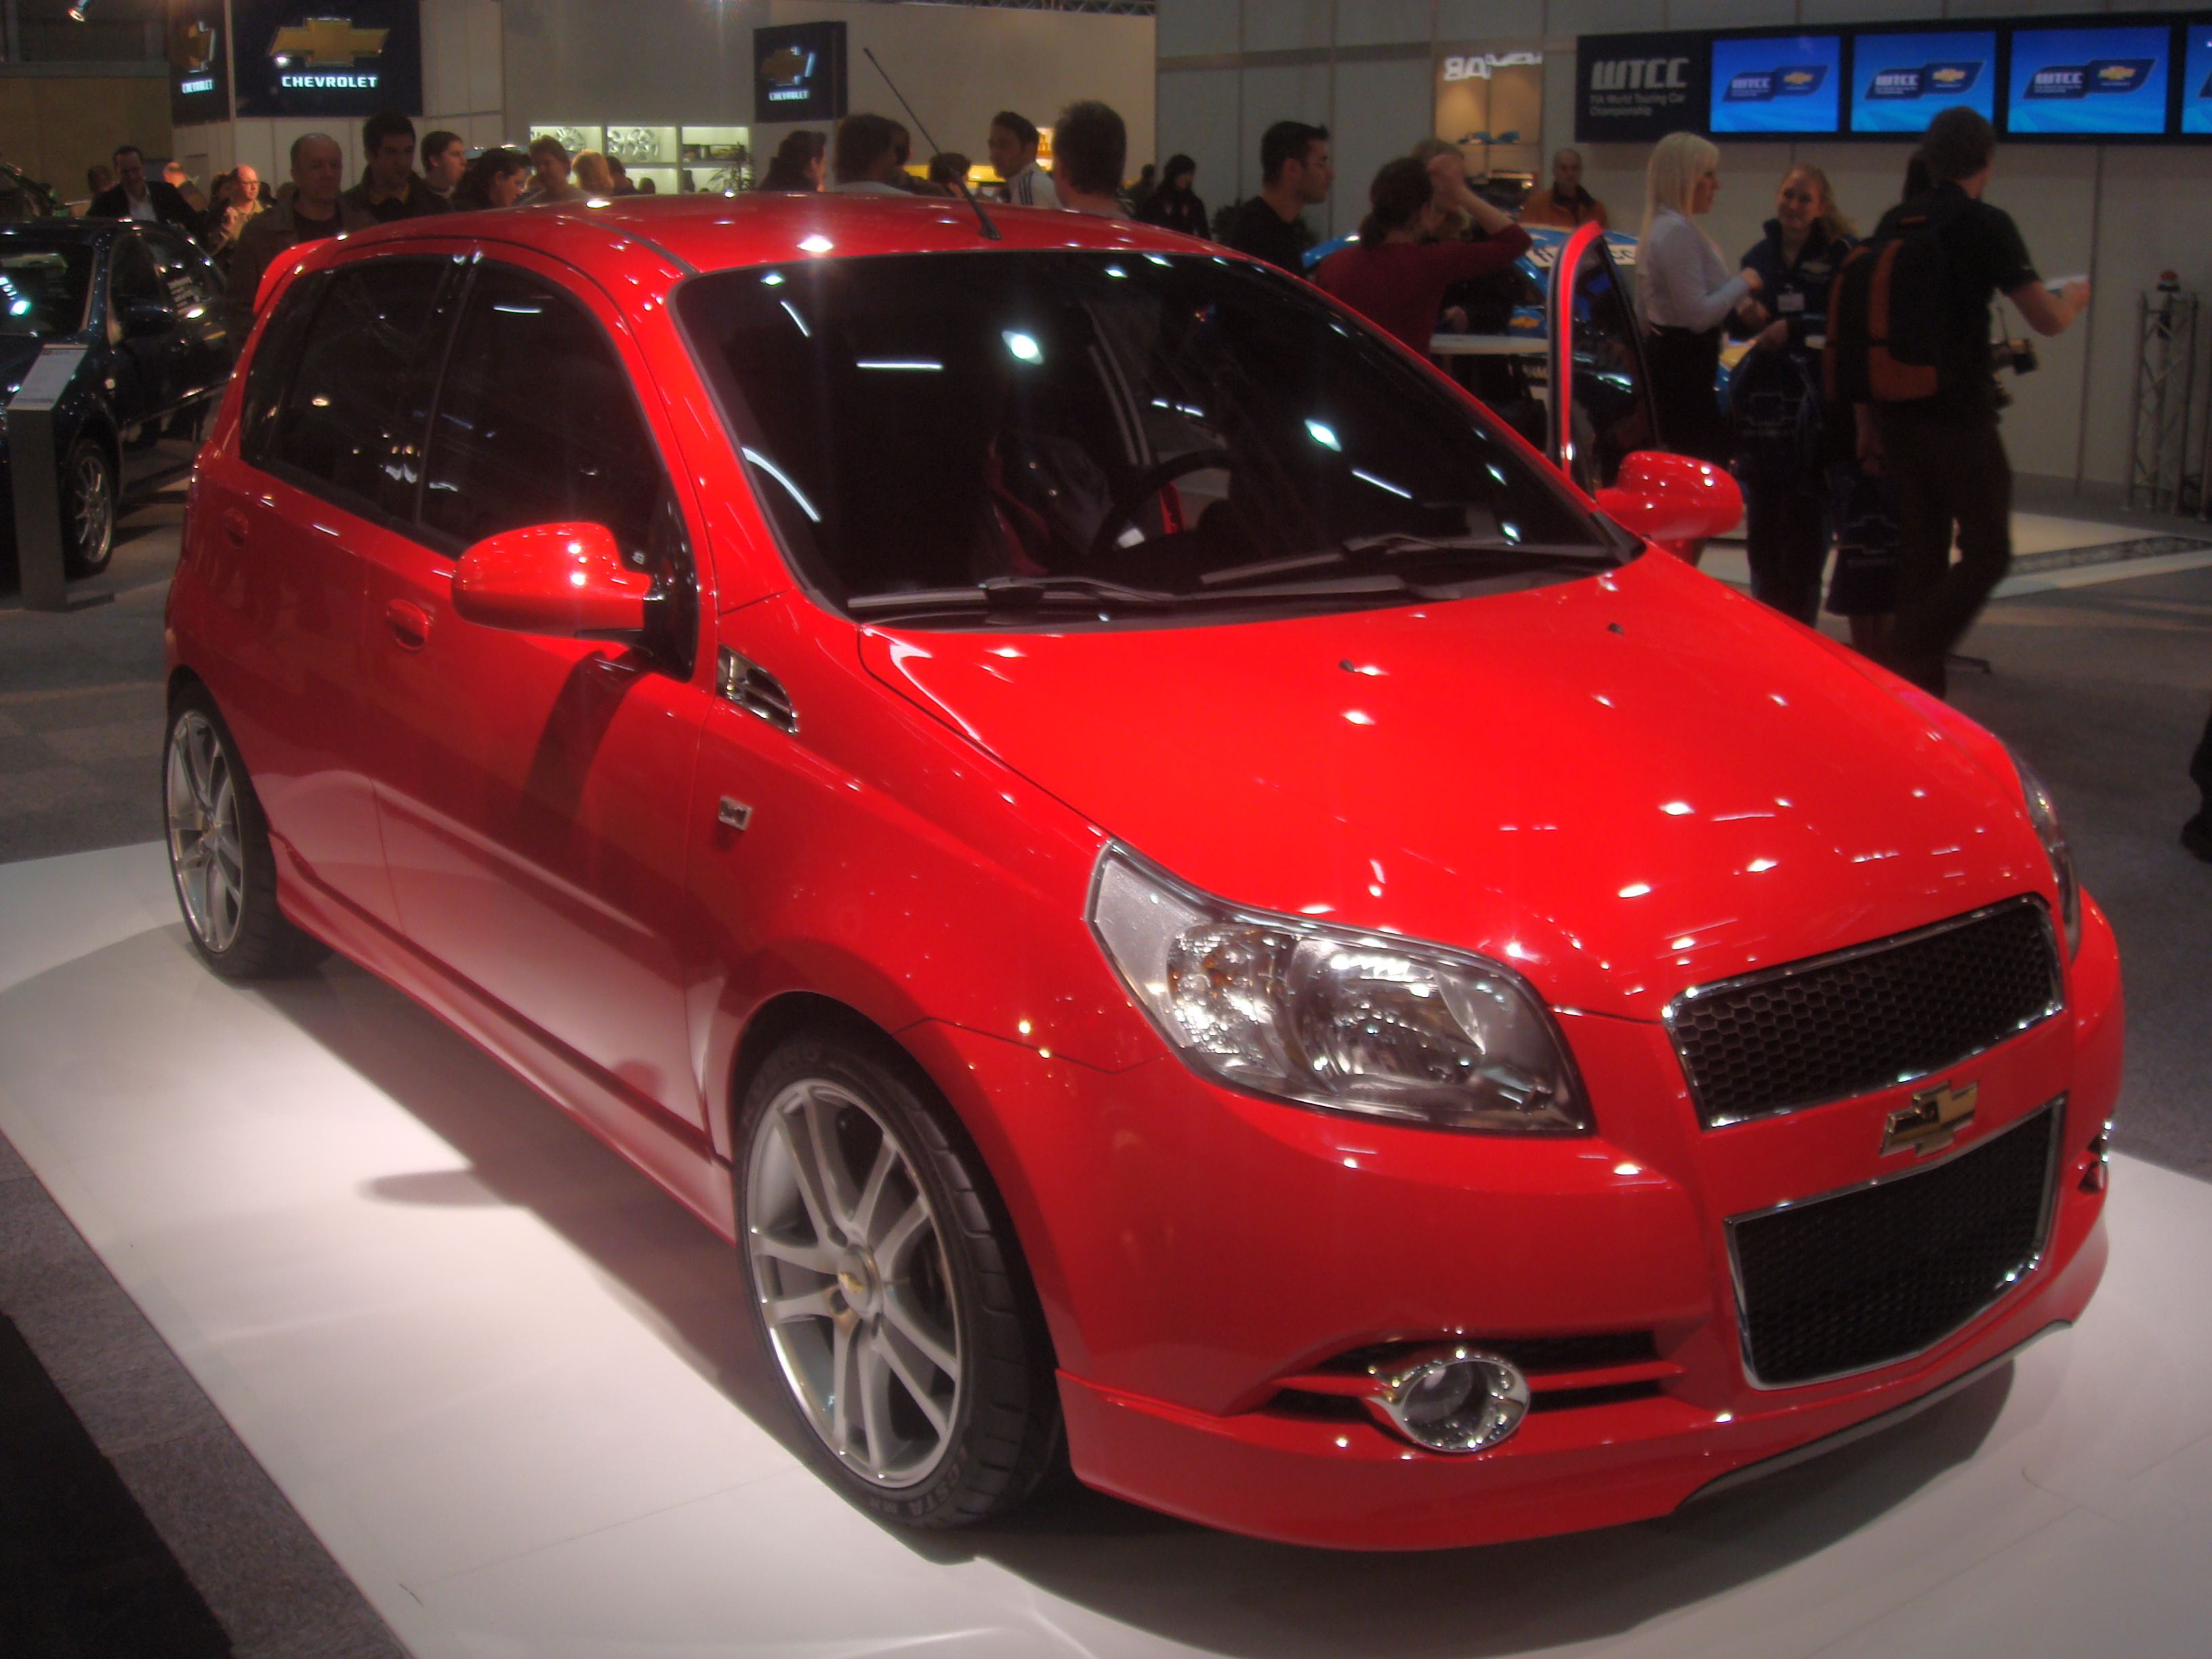 FileChevrolet Aveo 2008JPG  Wikimedia Commons